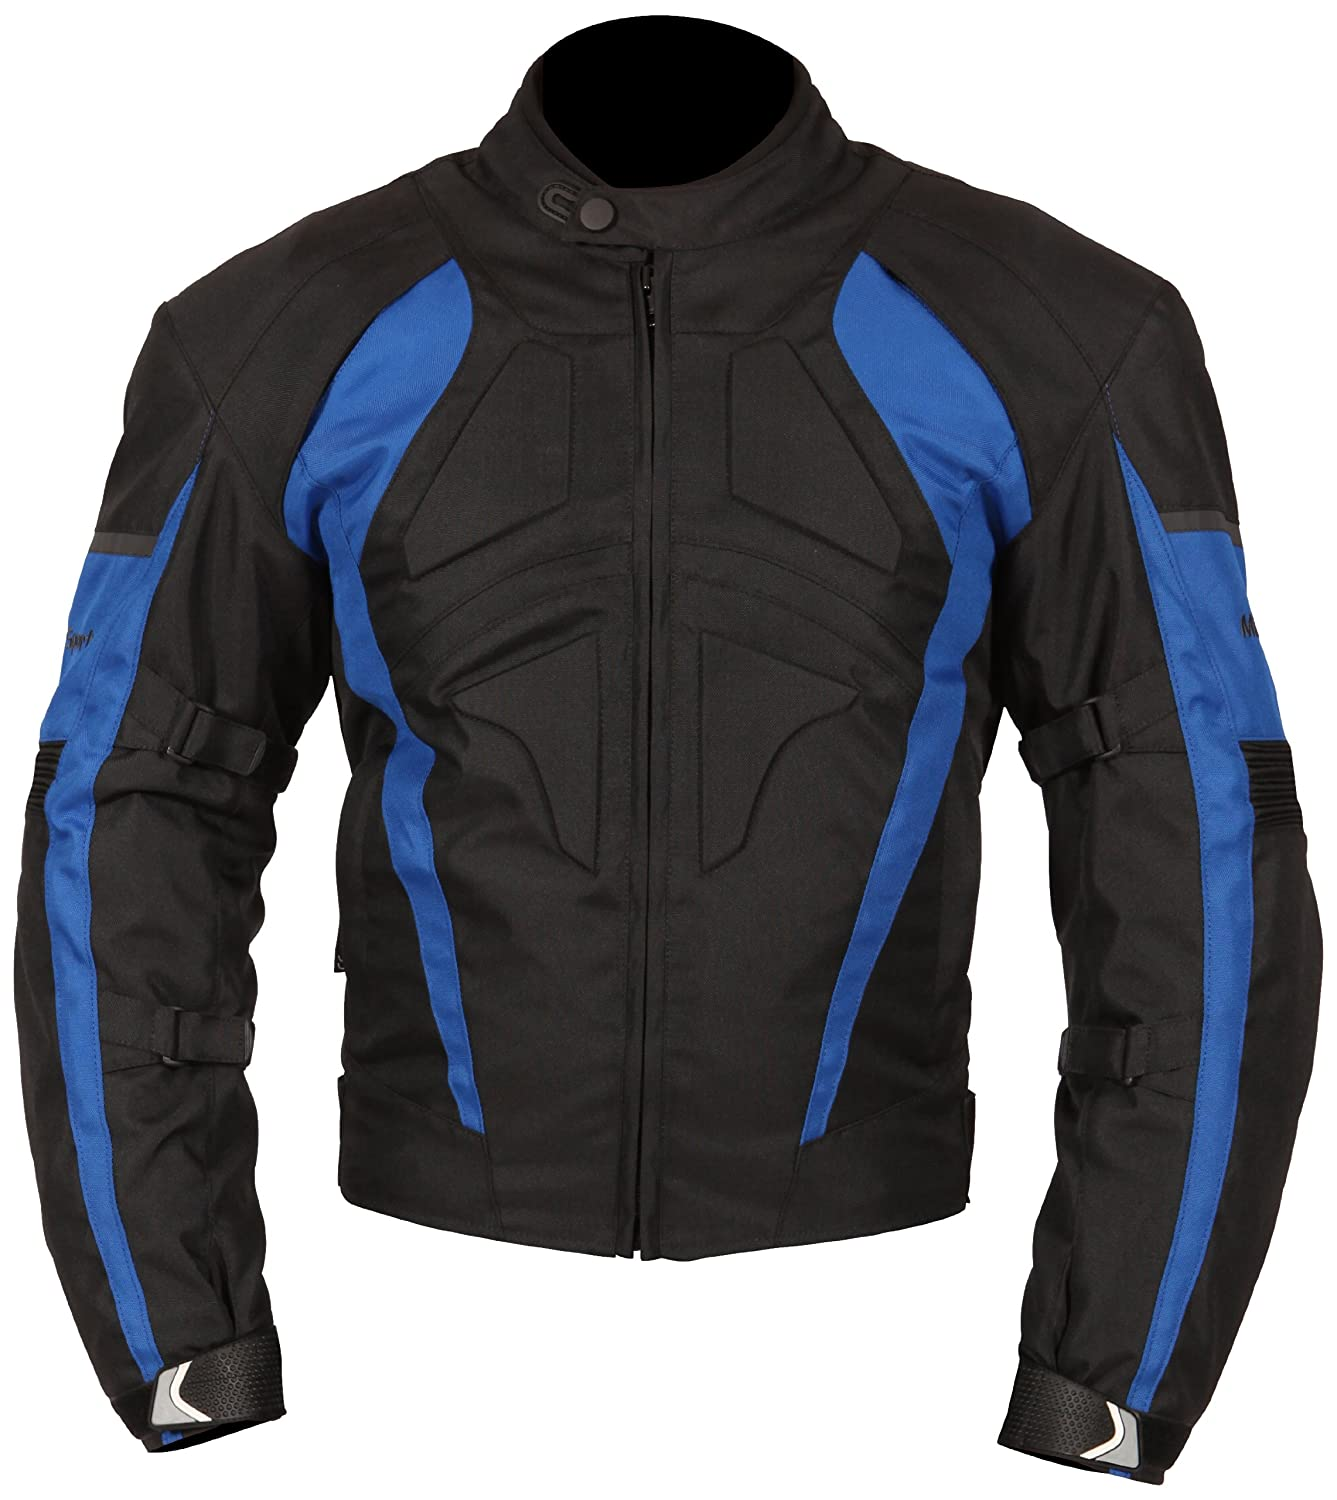 Milano Sport Gamma Motorcycle Jacket with Red Accent (Black, Medium) Fowlers MJGAM0385ME